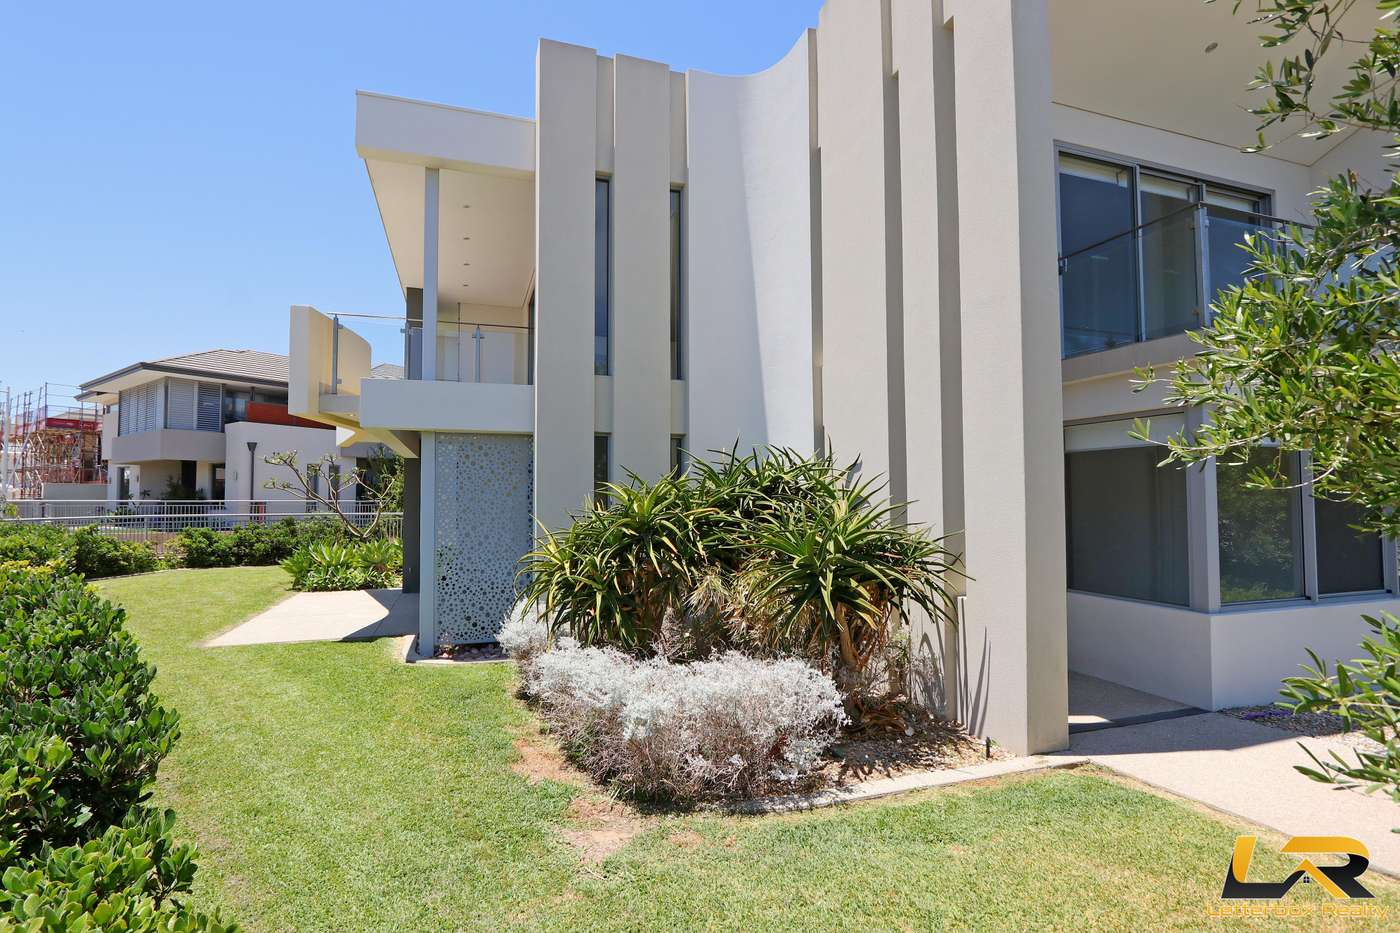 Main view of Homely house listing, 22 Lucretia Circle, North Coogee, WA 6163